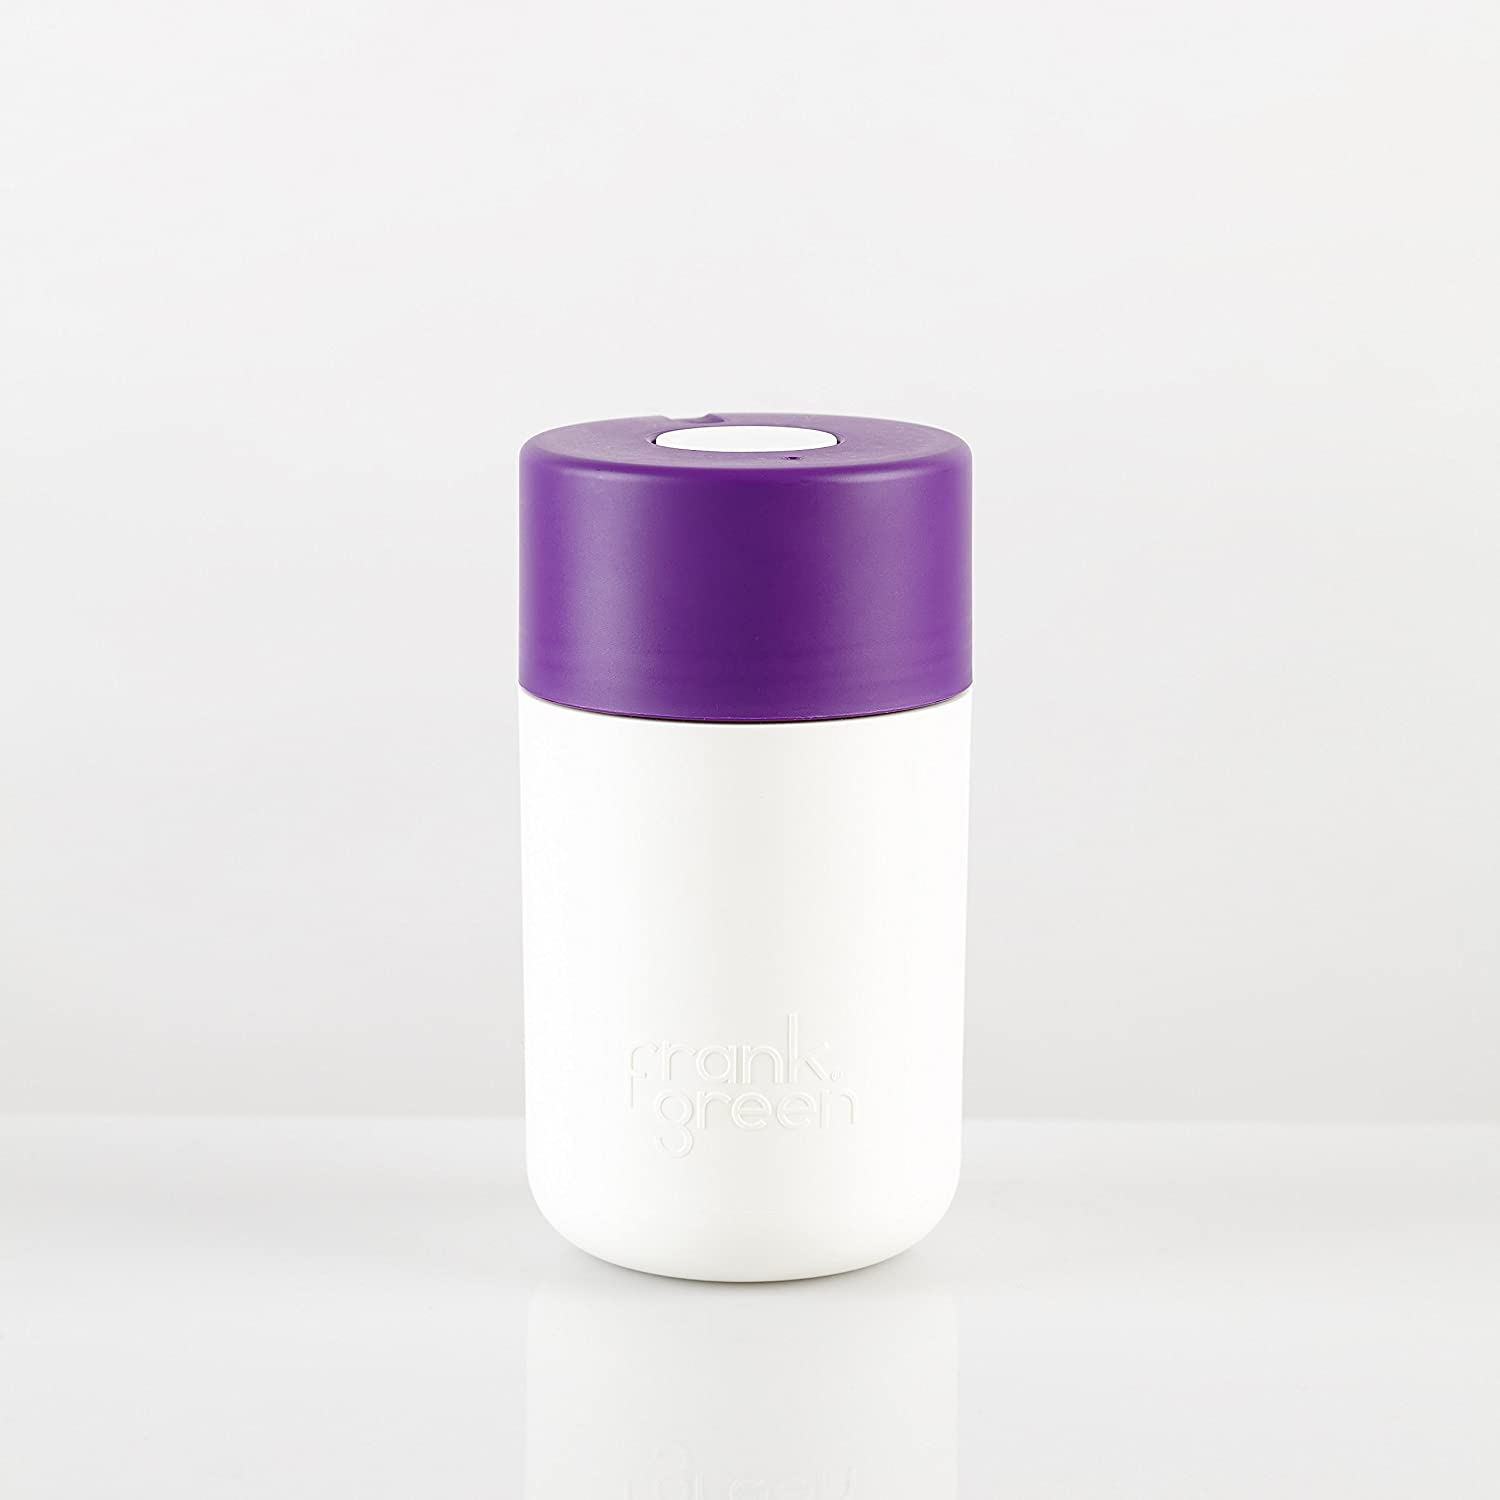 SmartCup by frank green 12oz reusable Coffee Cup White BasePurple LidWhite Button